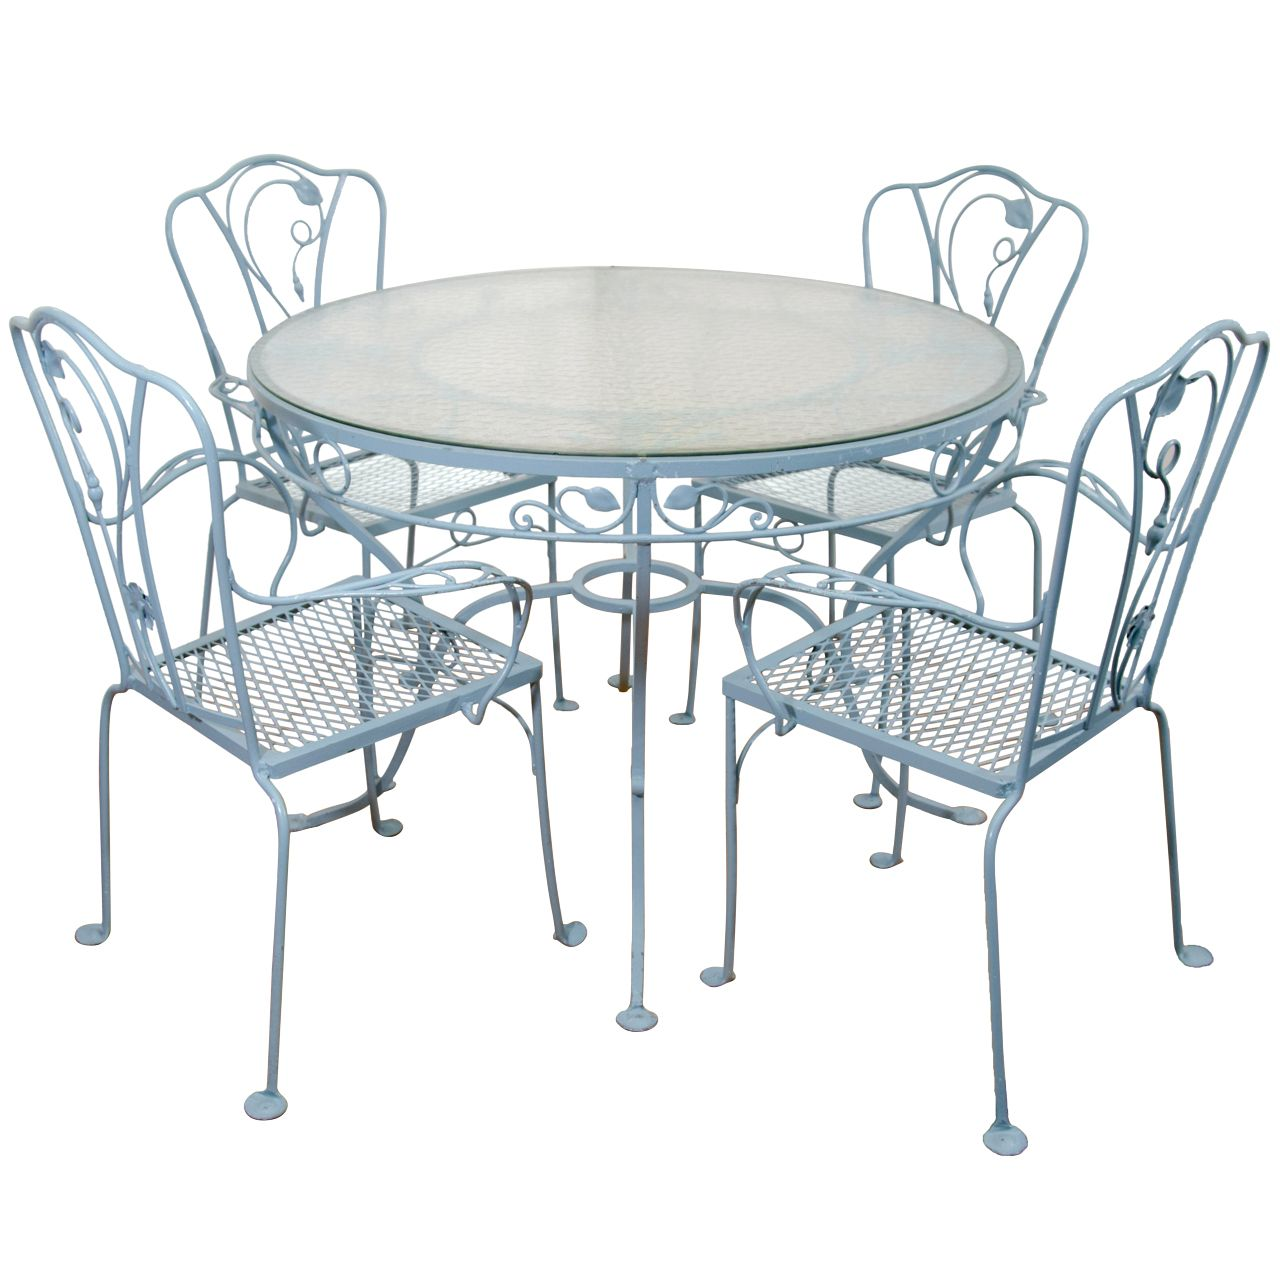 1stdibs Vintage Salterini Wrought Iron Table And Chairs In